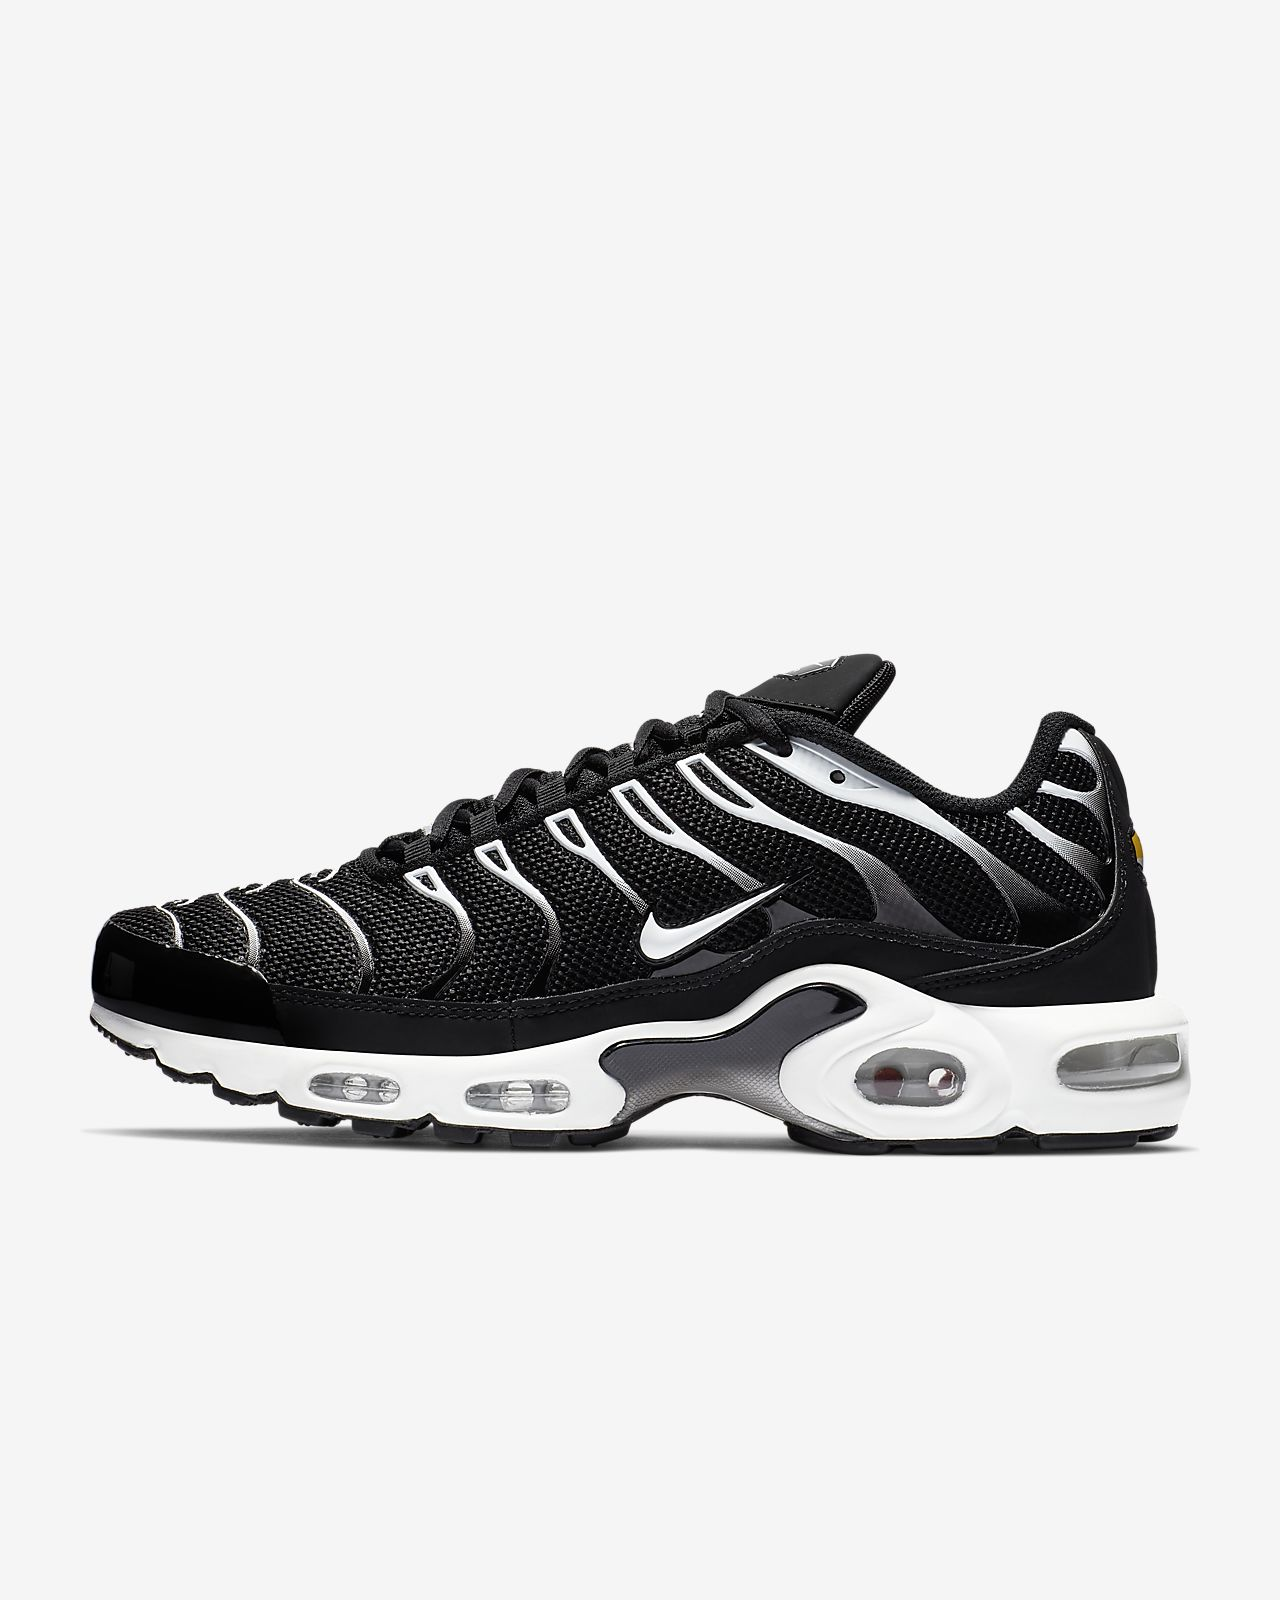 sale retailer 7dab4 dd622 Nike Air Max Plus Men's Shoe